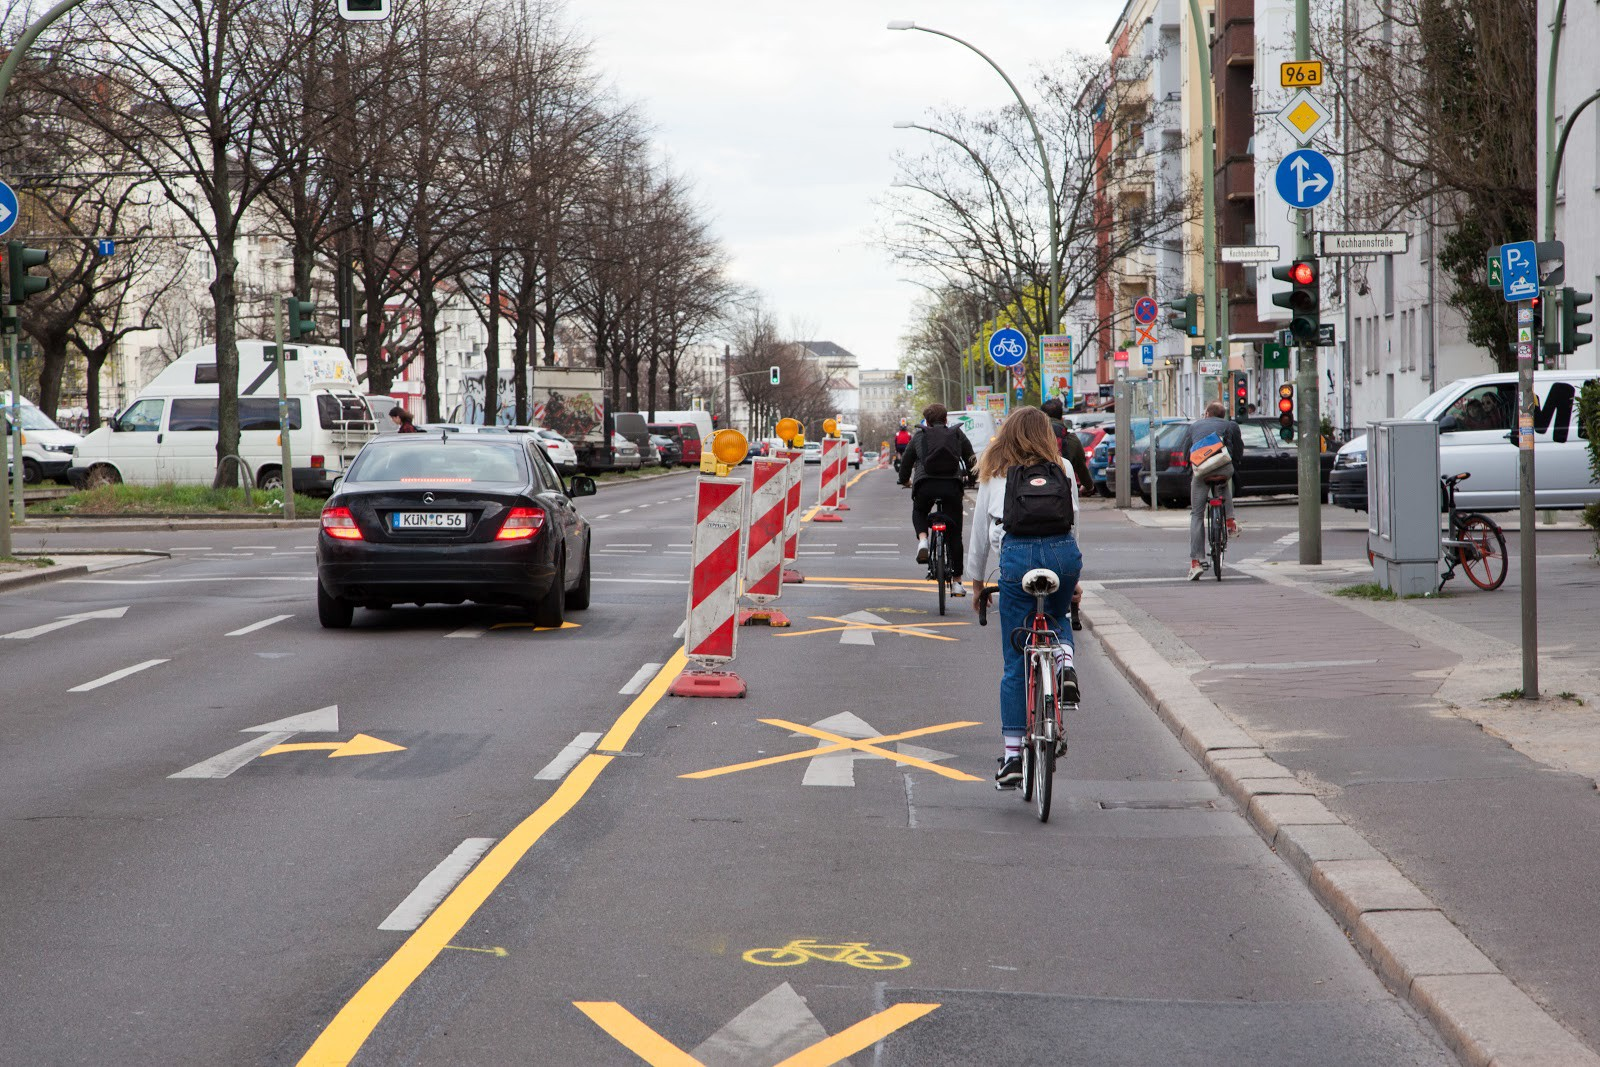 Cyclicts in a pop-up bike lane next to a car.